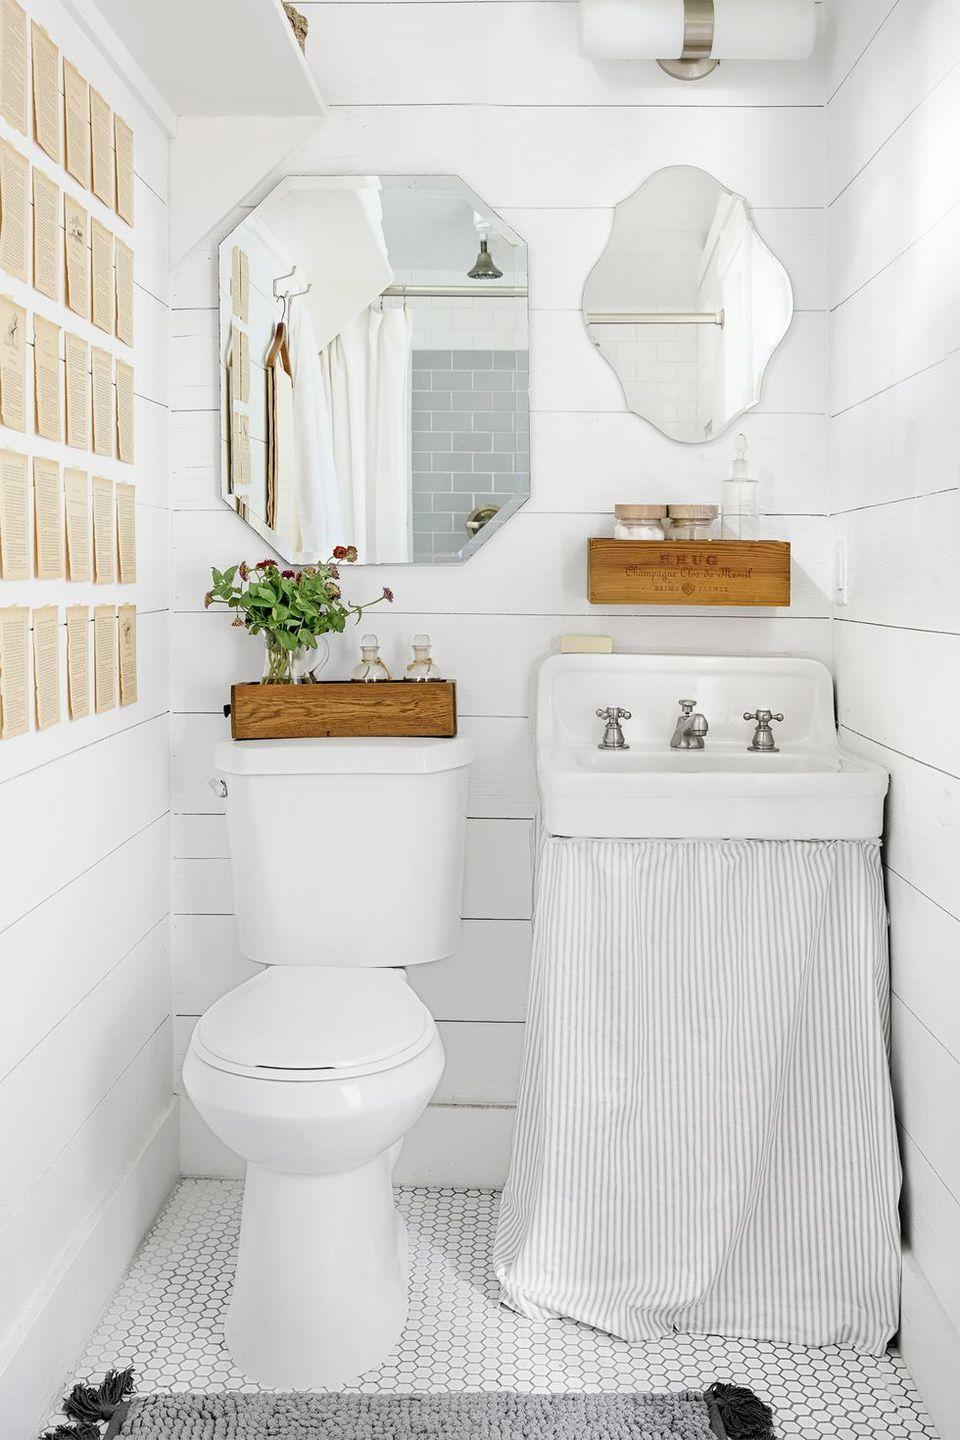 """<p>Paige simply attached a piece of striped fabric to her bathroom sink—instead of installing a bulky set of drawers—to cover up her necessities. The double mirrors also create the illusion of more space.</p><p><a class=""""link rapid-noclick-resp"""" href=""""https://www.amazon.com/Tiny-House-Living-Building-Square/dp/1440333165/?tag=syn-yahoo-20&ascsubtag=%5Bartid%7C10072.g.35047961%5Bsrc%7Cyahoo-us"""" rel=""""nofollow noopener"""" target=""""_blank"""" data-ylk=""""slk:SHOP TINY HOUSE BOOKS"""">SHOP TINY HOUSE BOOKS</a></p>"""